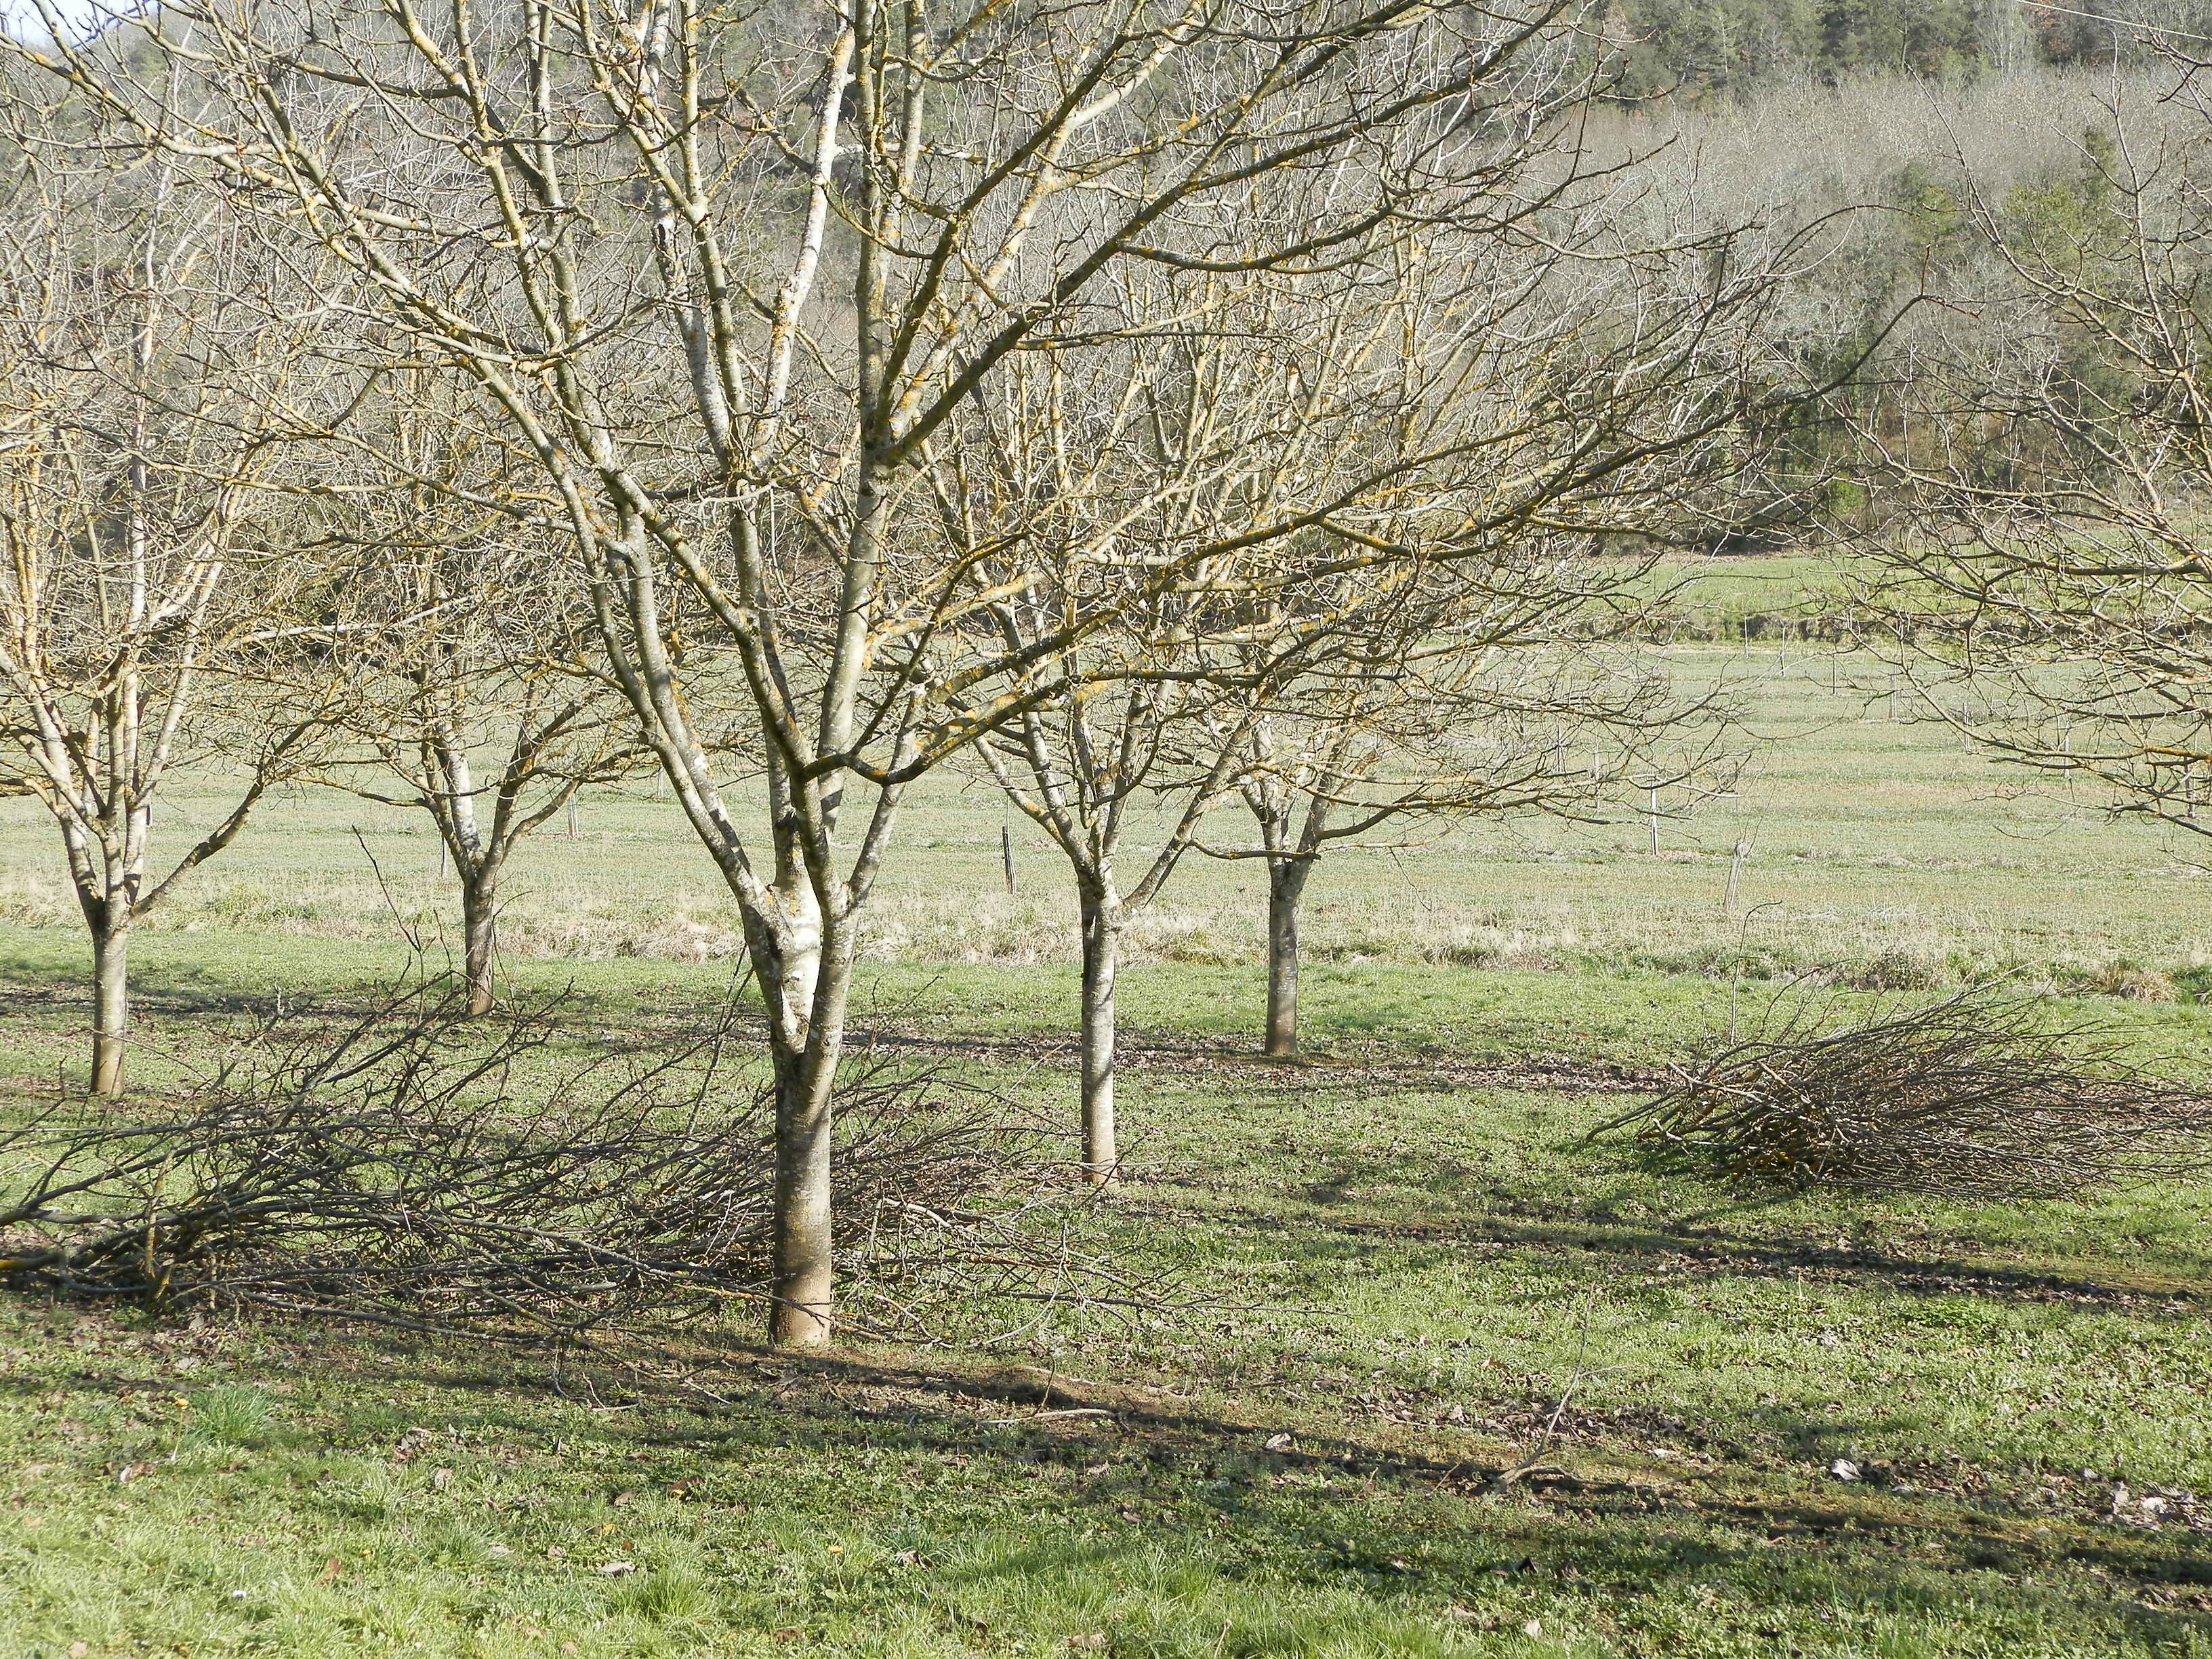 Périgord walnuts - worth their weight in gold  Discover more